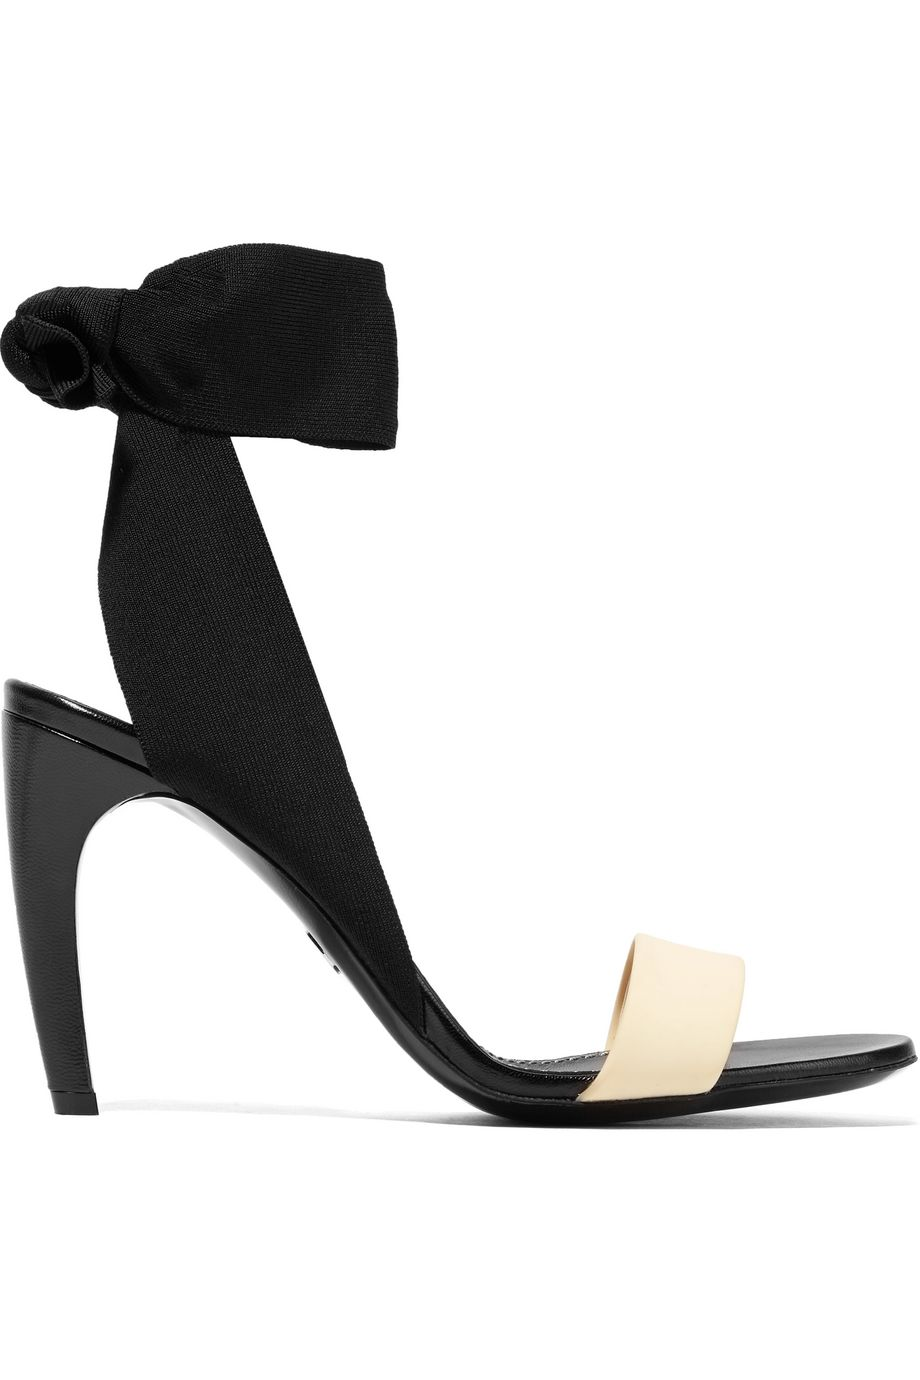 Proenza Schouler Canvas, rubber and leather sandals